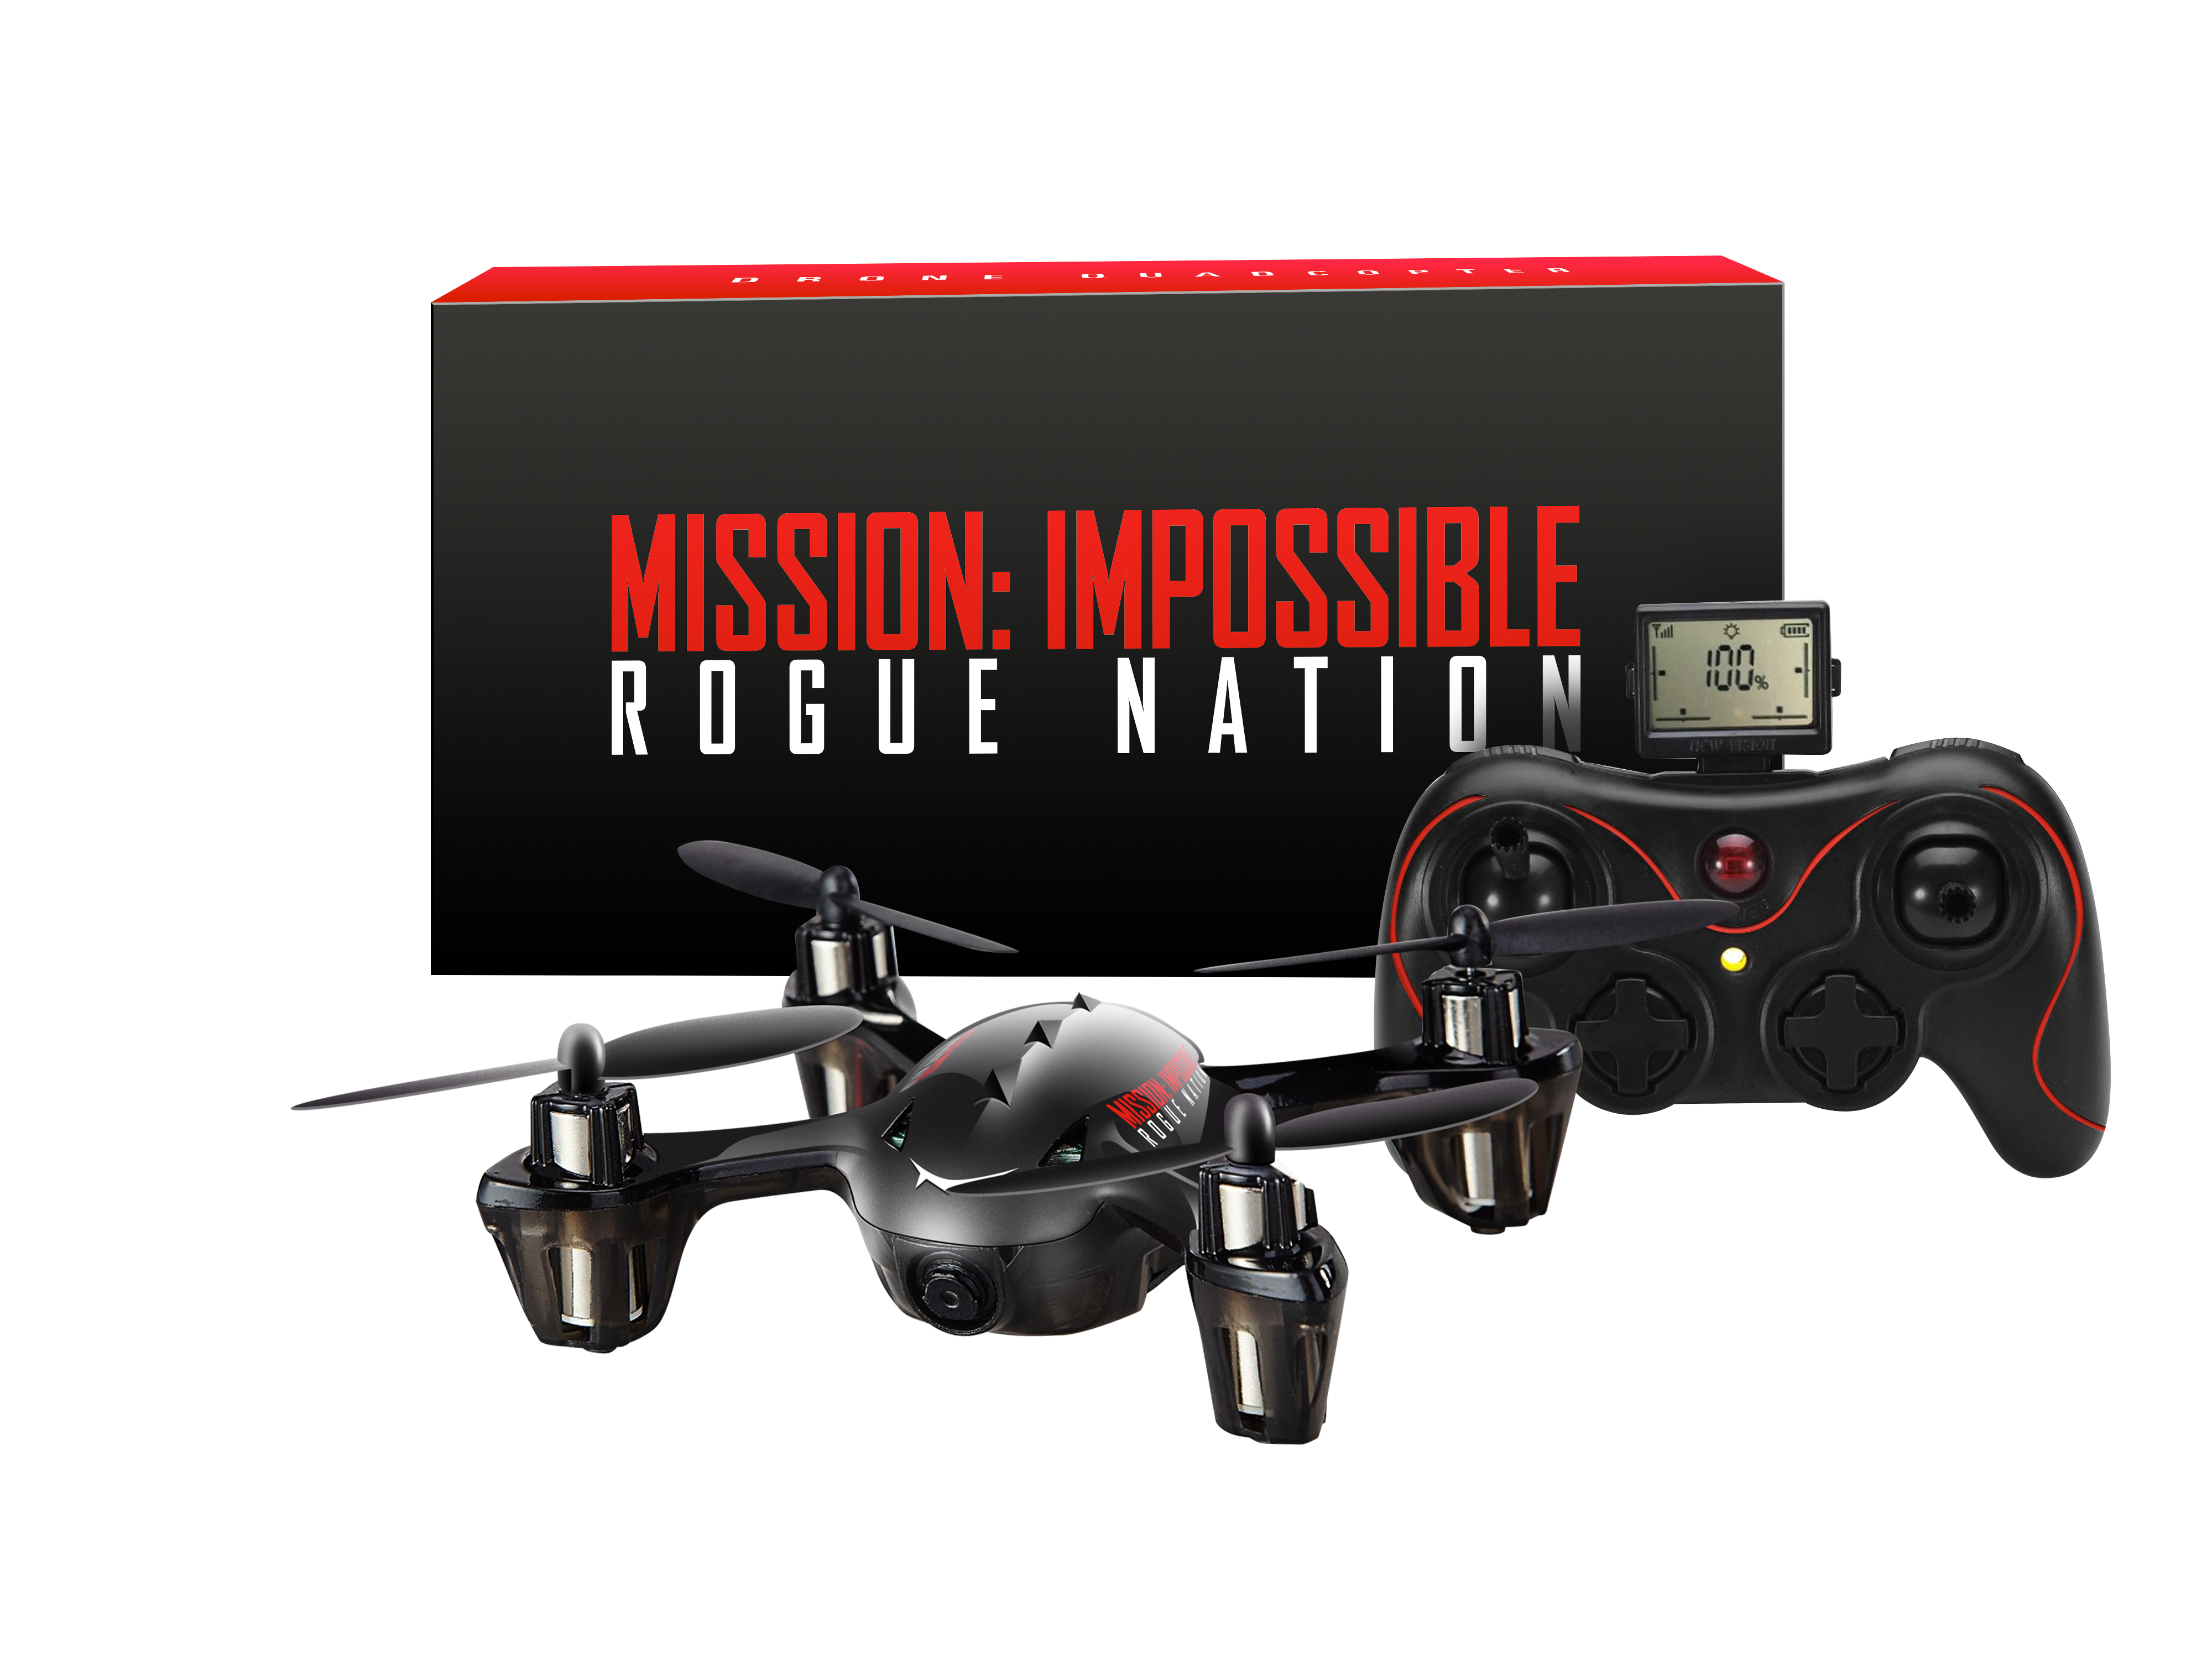 Win 1 Of 5 Mission Impossible Rogue Nation Drone Quad